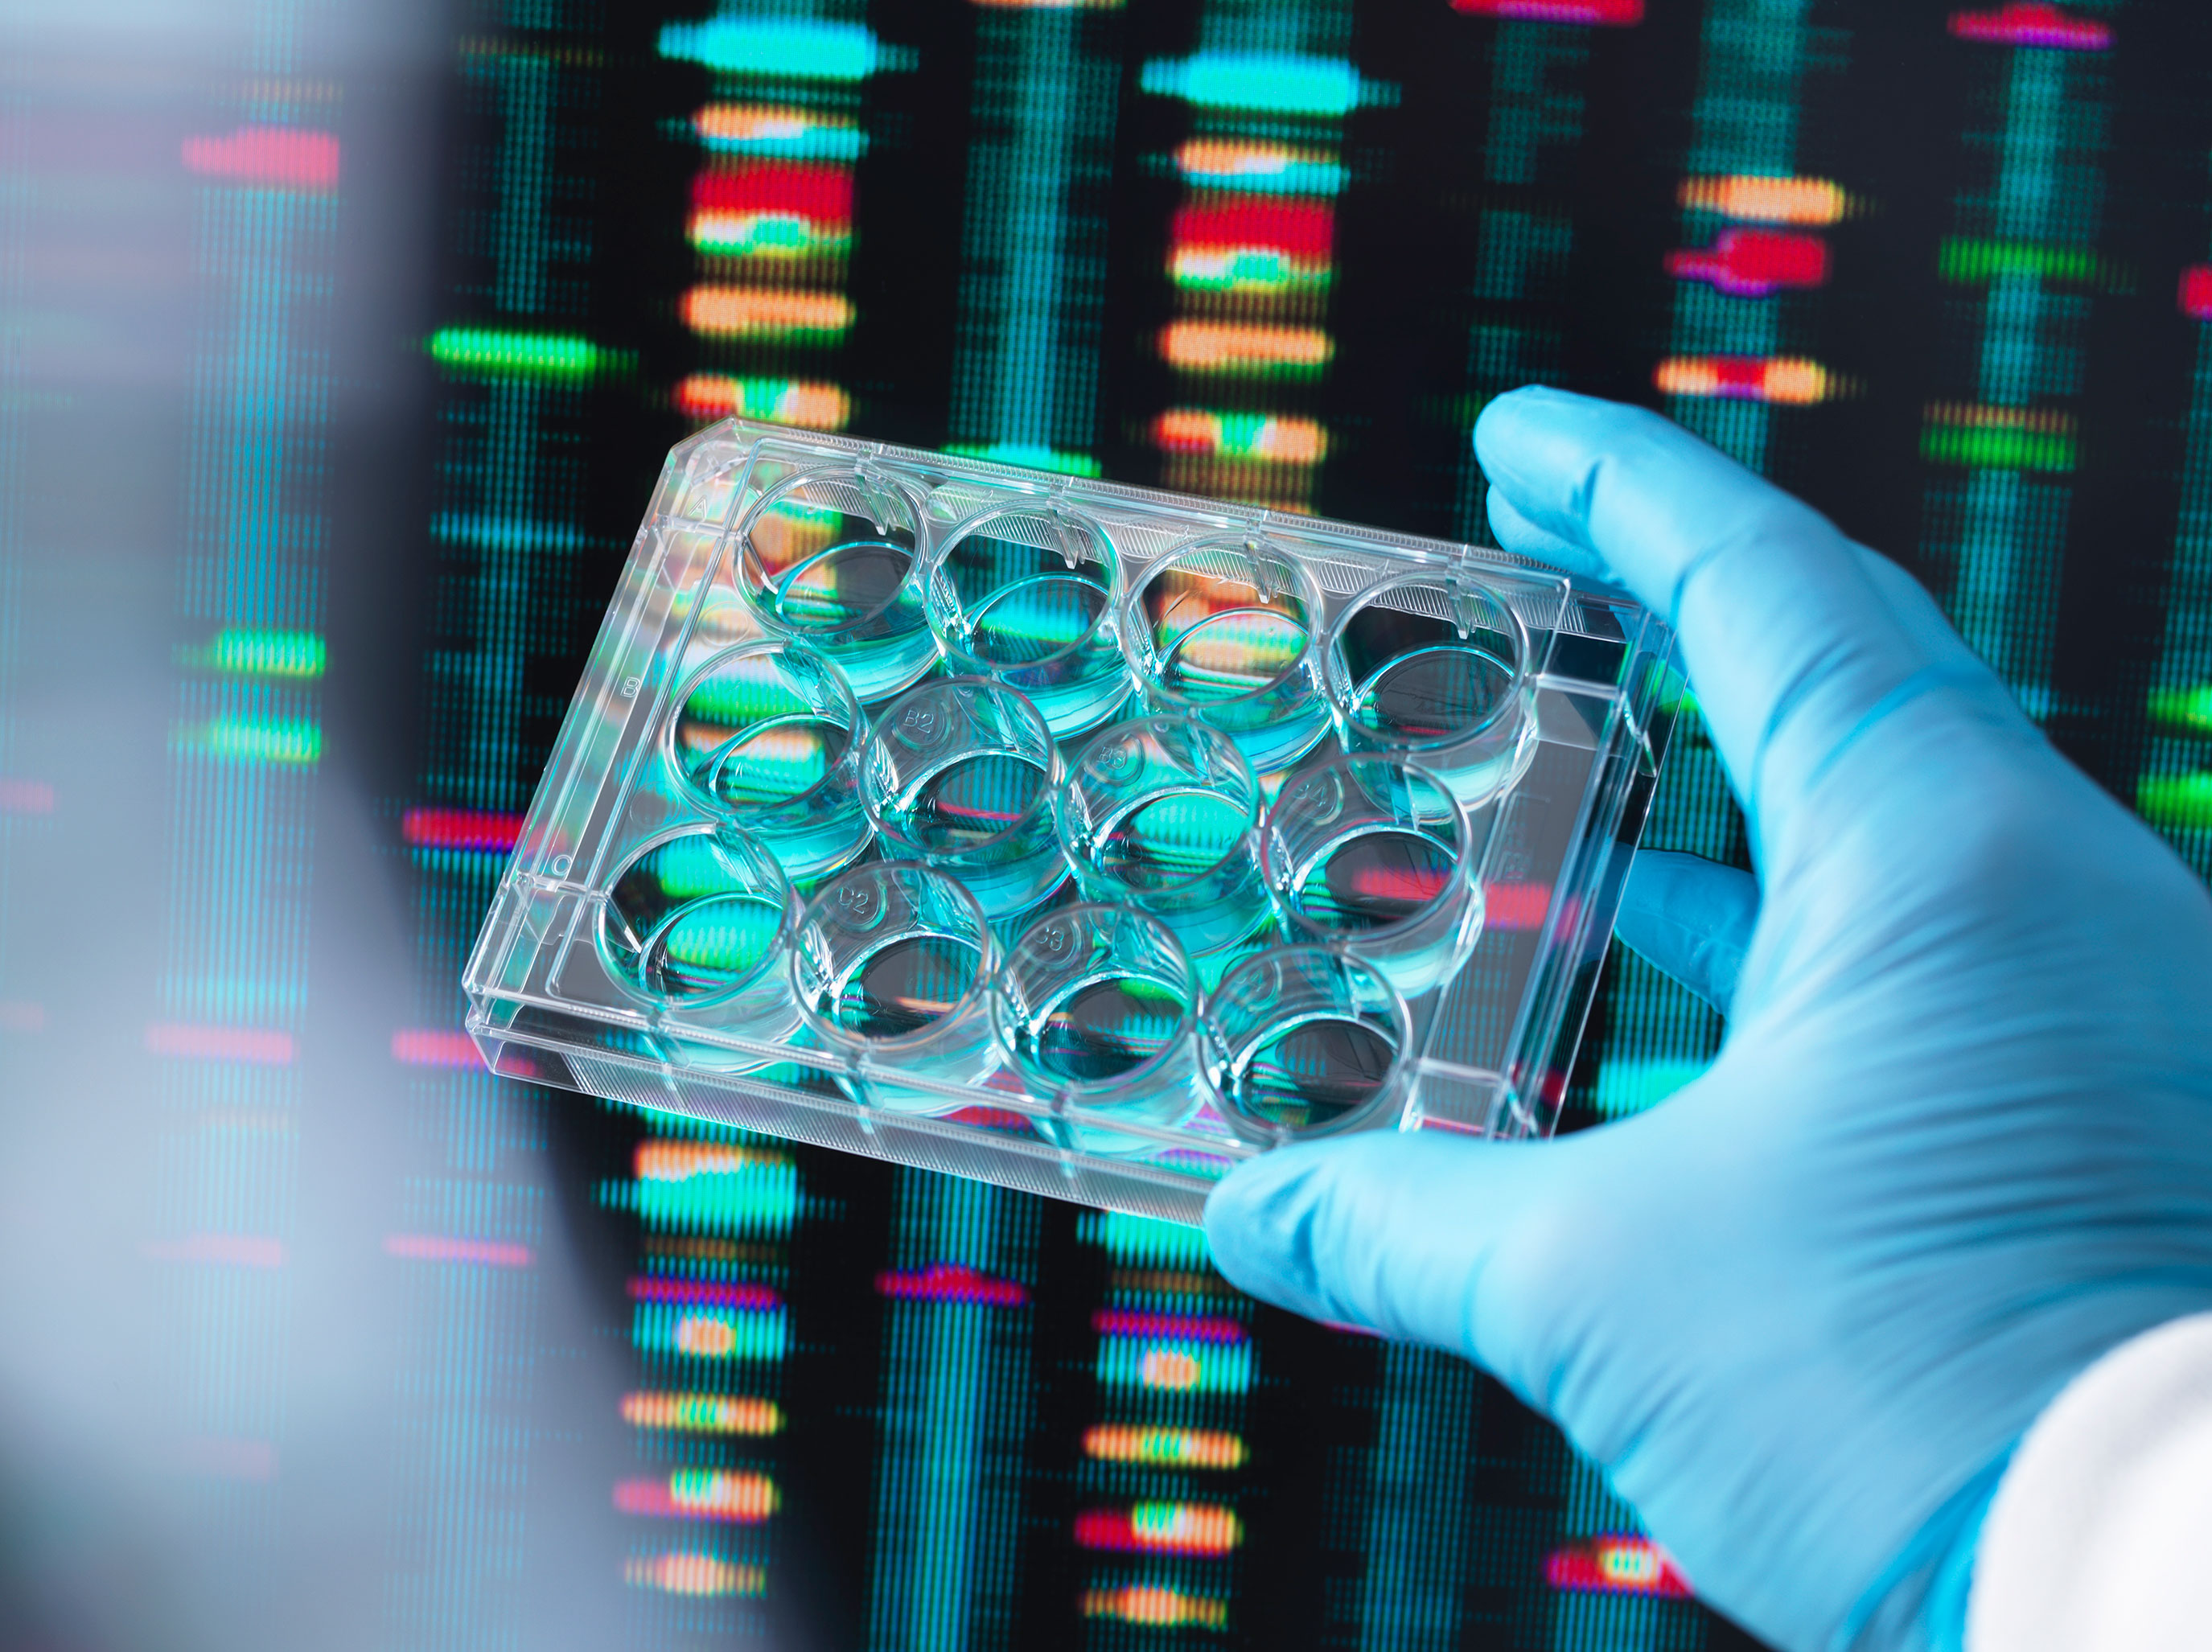 Synthego's new products give scientists access to edited genetic material